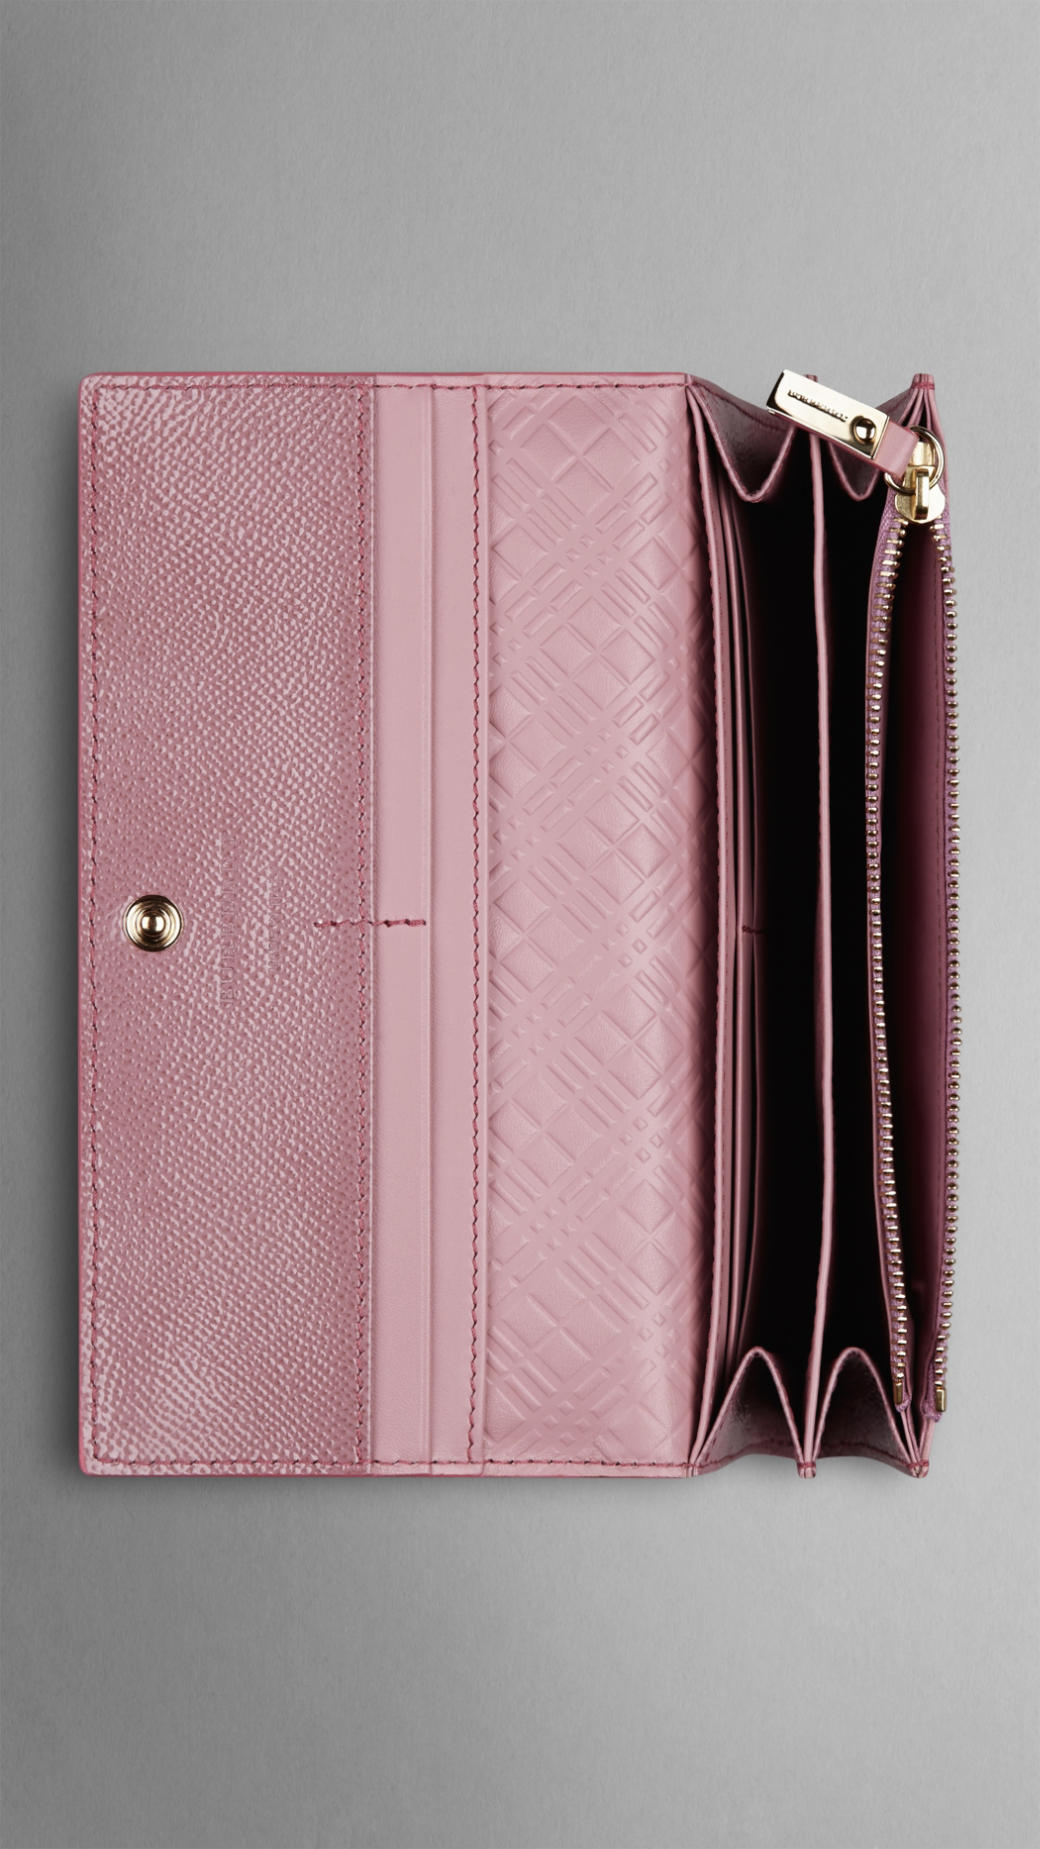 26235a931d95 Lyst - Burberry Patent London Leather Continental Wallet in Pink